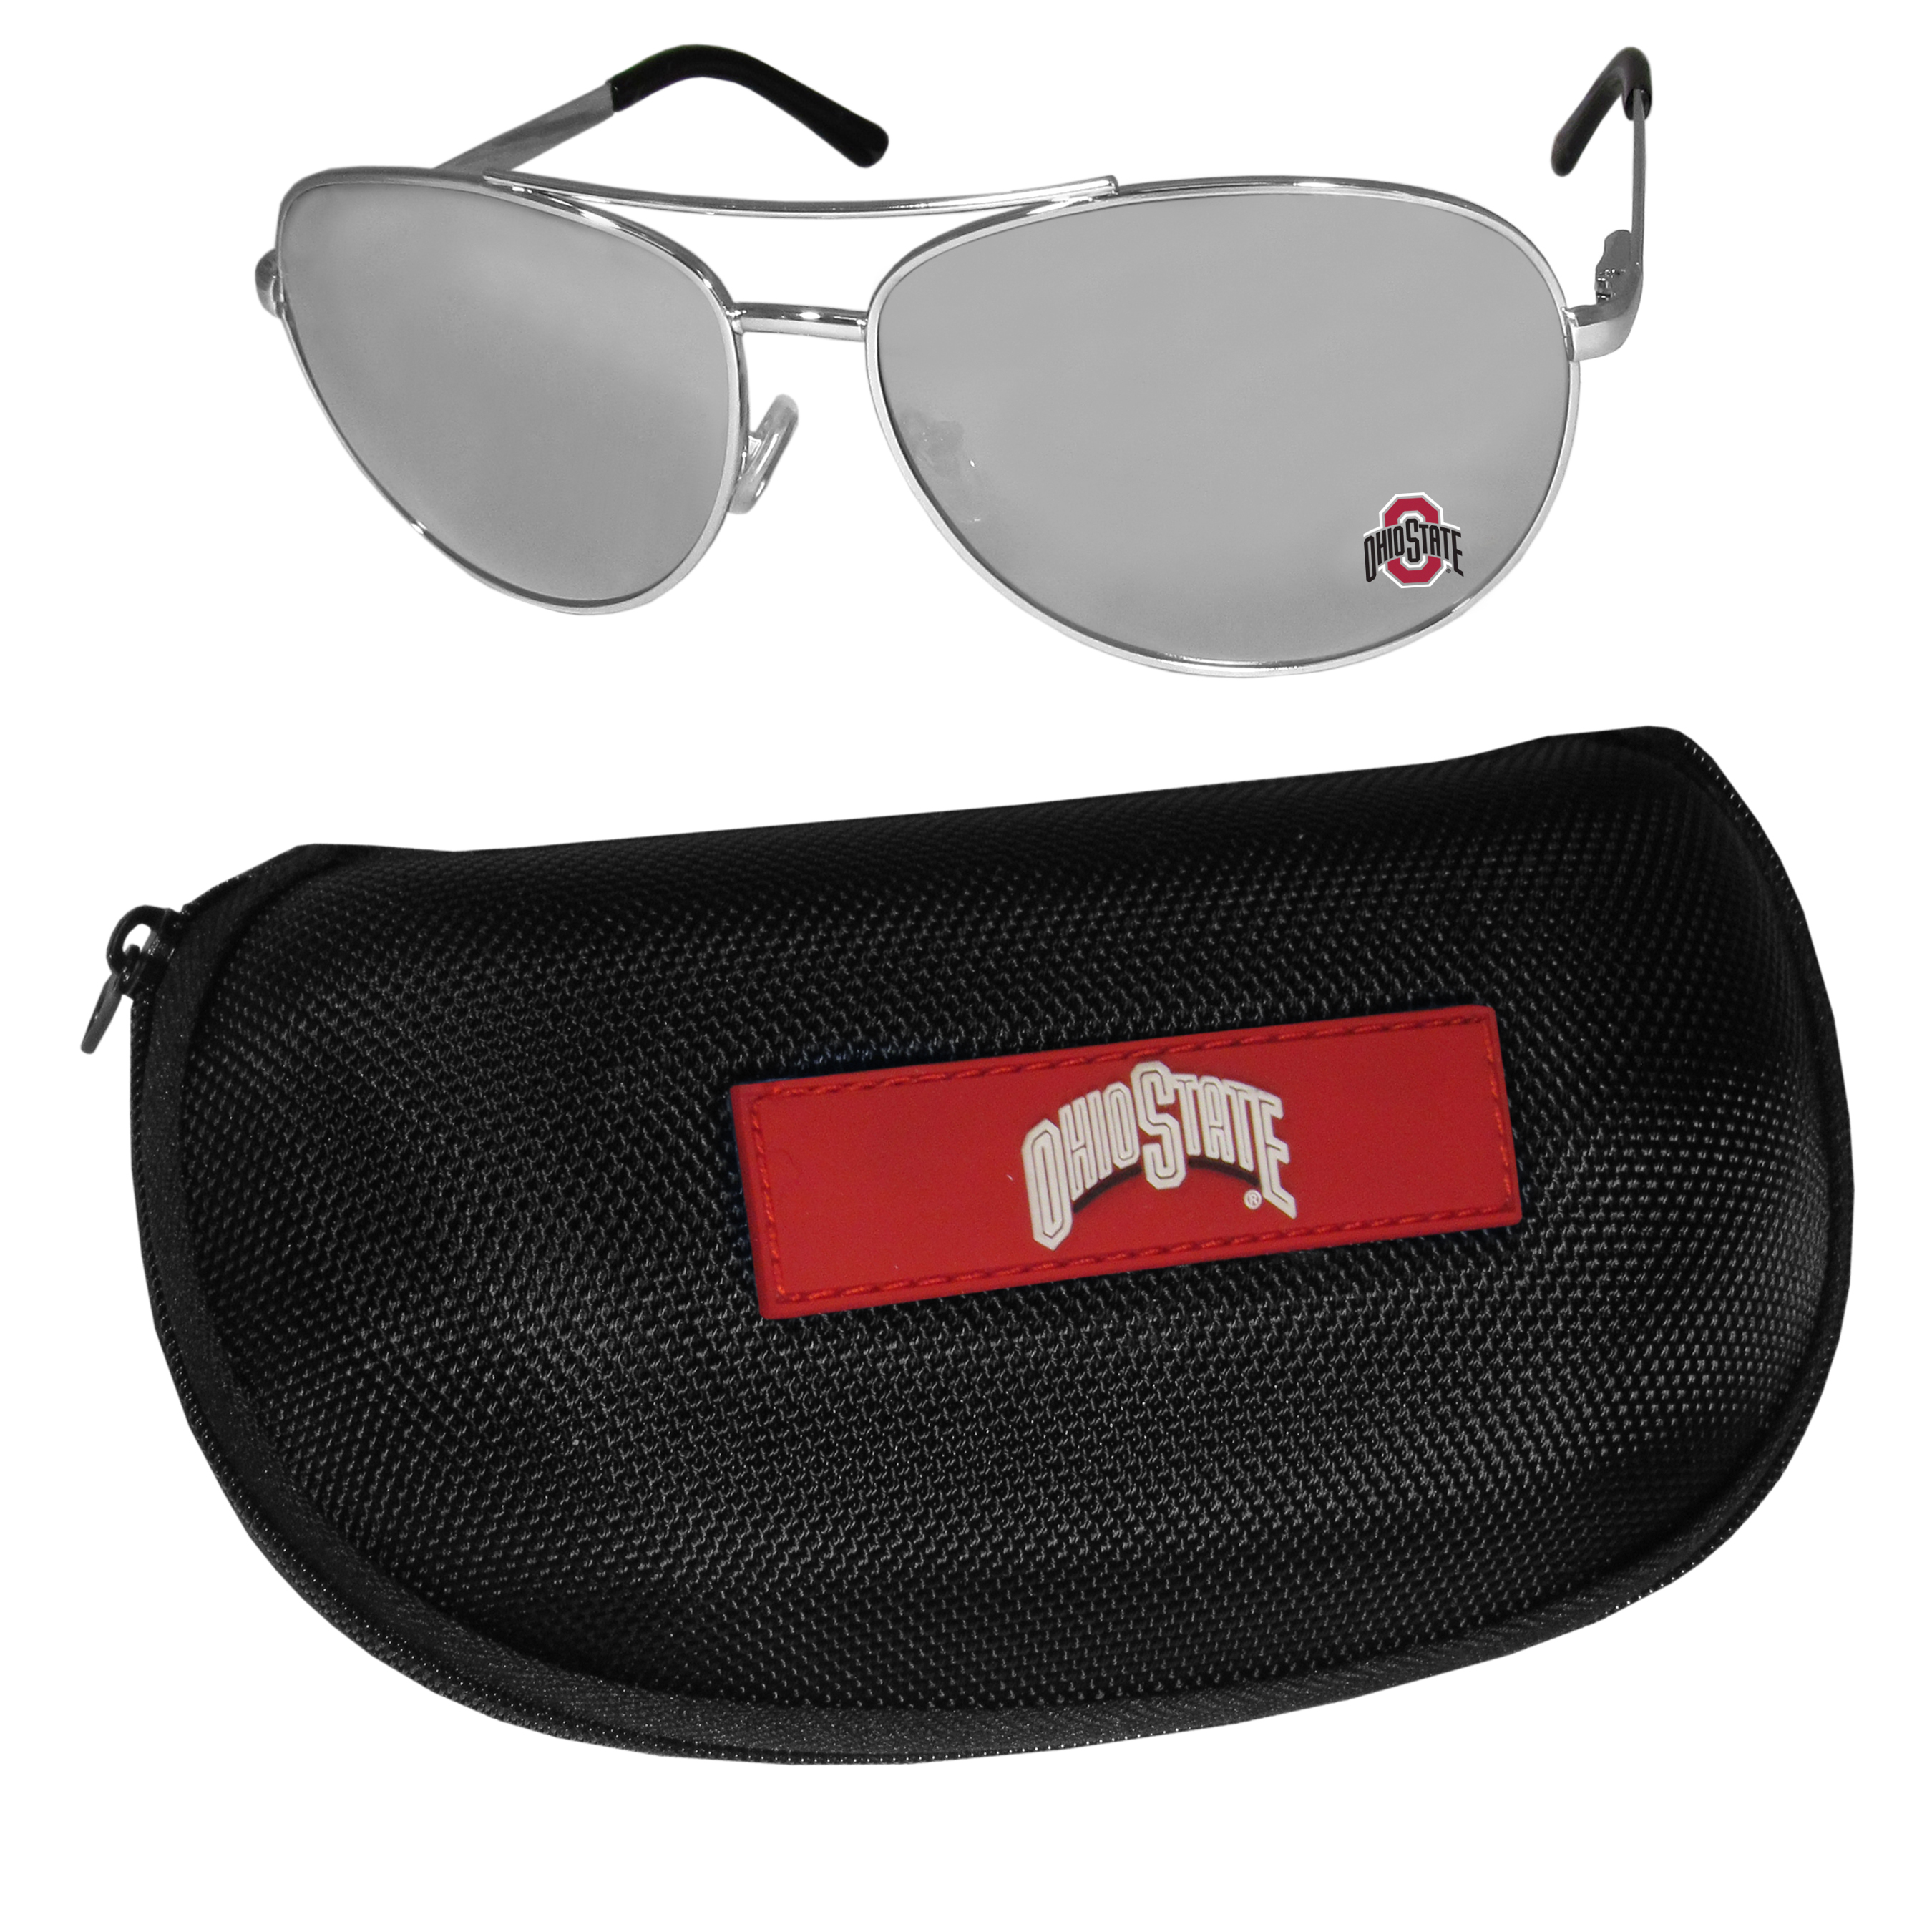 Ohio St. Buckeyes Aviator Sunglasses and Zippered Carrying Case - Aviator sunglasses are truly an iconic retro fashion statement that never goes out-of-style. Our Ohio St. Buckeyes  aviator sunglasses pair this classic look with your love of the game. The iridium coated lenses reduce glare while driving, boating, golfing and their 100% UVA/UVB rating provides you with the maximum UV protection for all your outdoor activities. A millennial favorite, these affordable designer frames are the perfect eyewear accessory for a sports fan that is looking for high-quality at an affordable price. The durable, flex hinged frames are tough enough for hiking and camping or if you prefer sun bathing by the pool or on the beach these shades will really stand the test of time. The sunglasses come with a hard shell zippered case which has a large team logo on the lid that will make even the most die-hard fan proud!